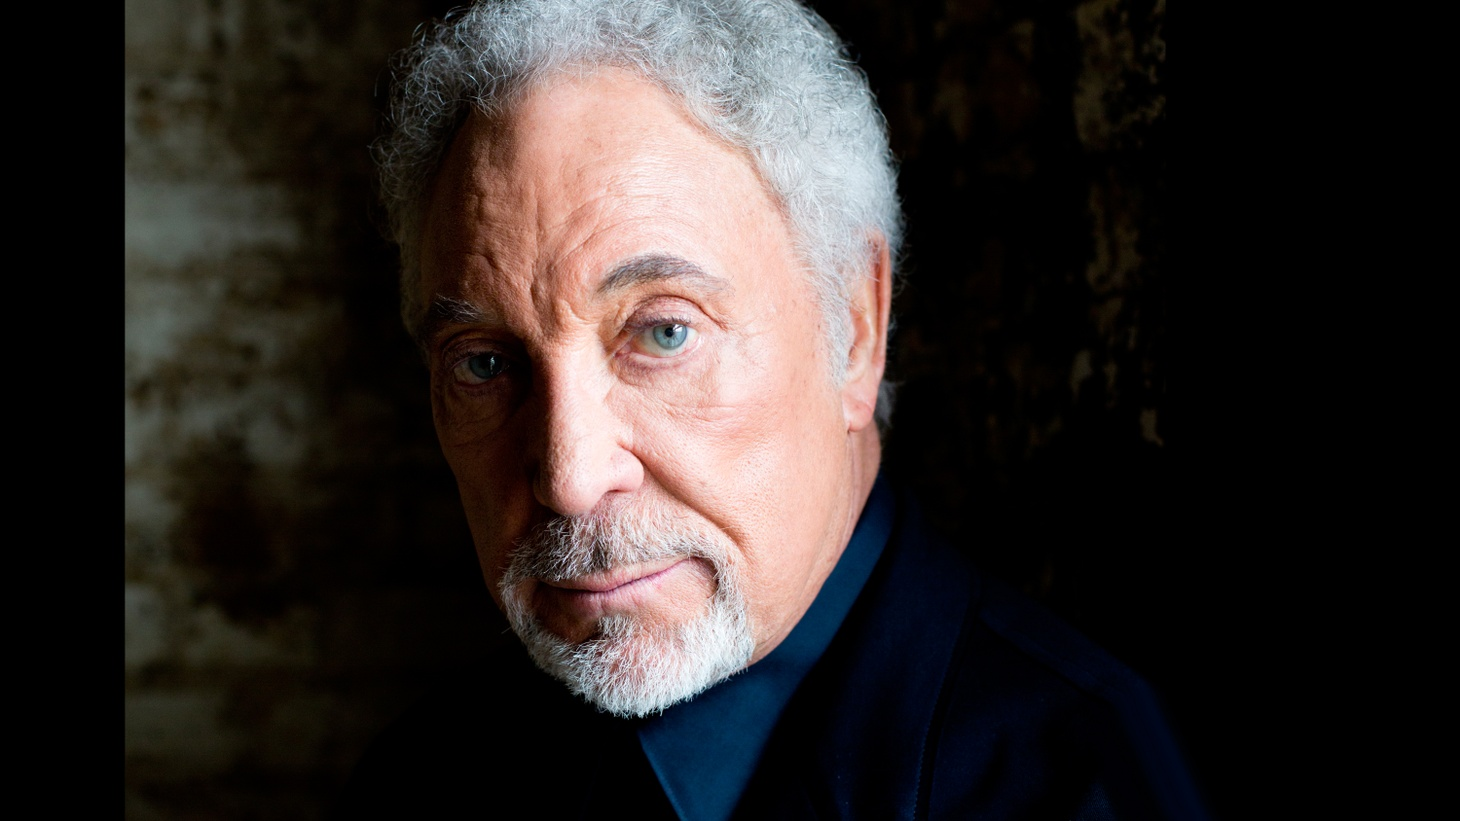 The legendary entertainer Sir Tom Jones has a new album out covering some of his favorite songs by artists like Gillian Welch, Los Lobos and Willie Nelson.